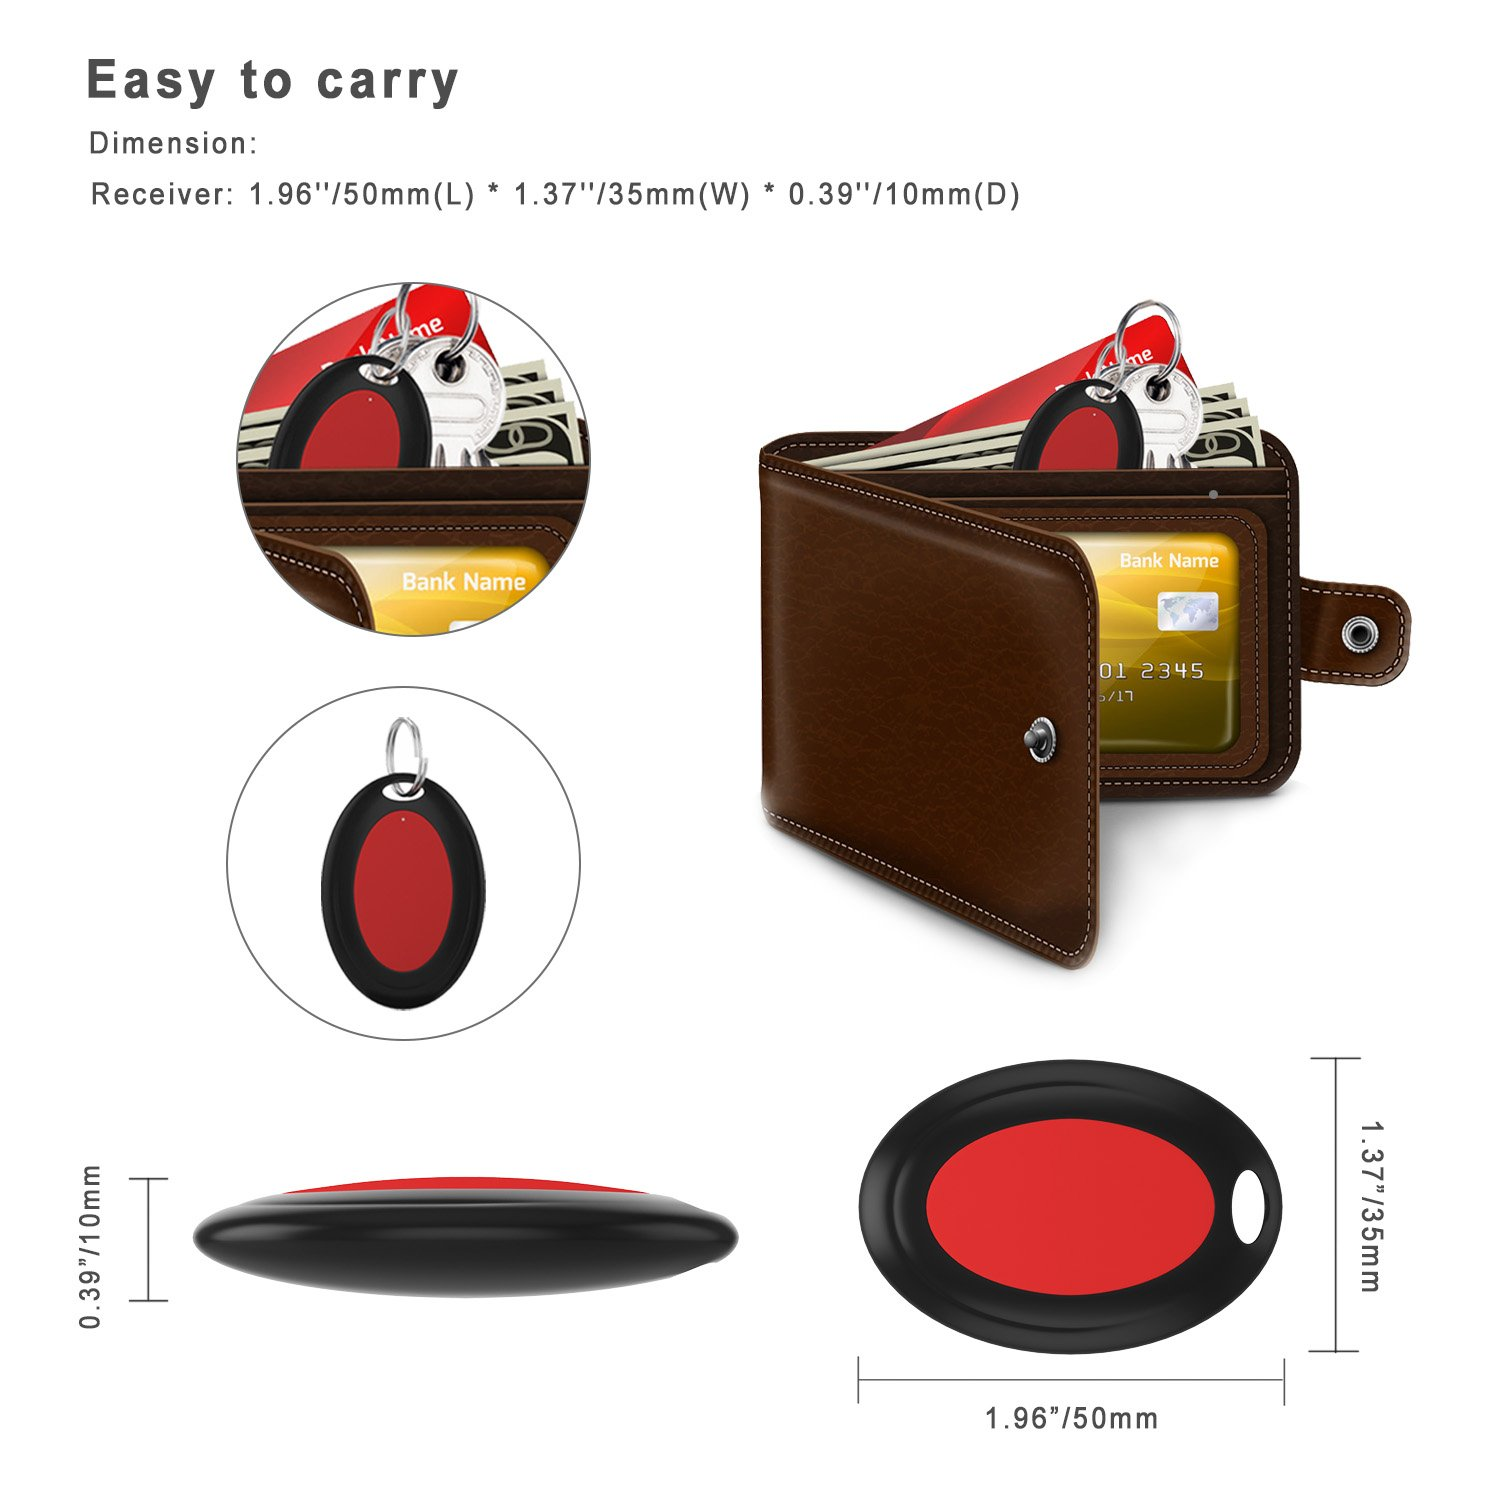 1 Remote Control Transmitter /& 4 Receivers Anything Finder Alarm Reminder Quickly Find Your Lost Items AOGUERBE Wireless Key Finder Phone Finder Smart Tracker Locator with LED Flashlight Anti Lost